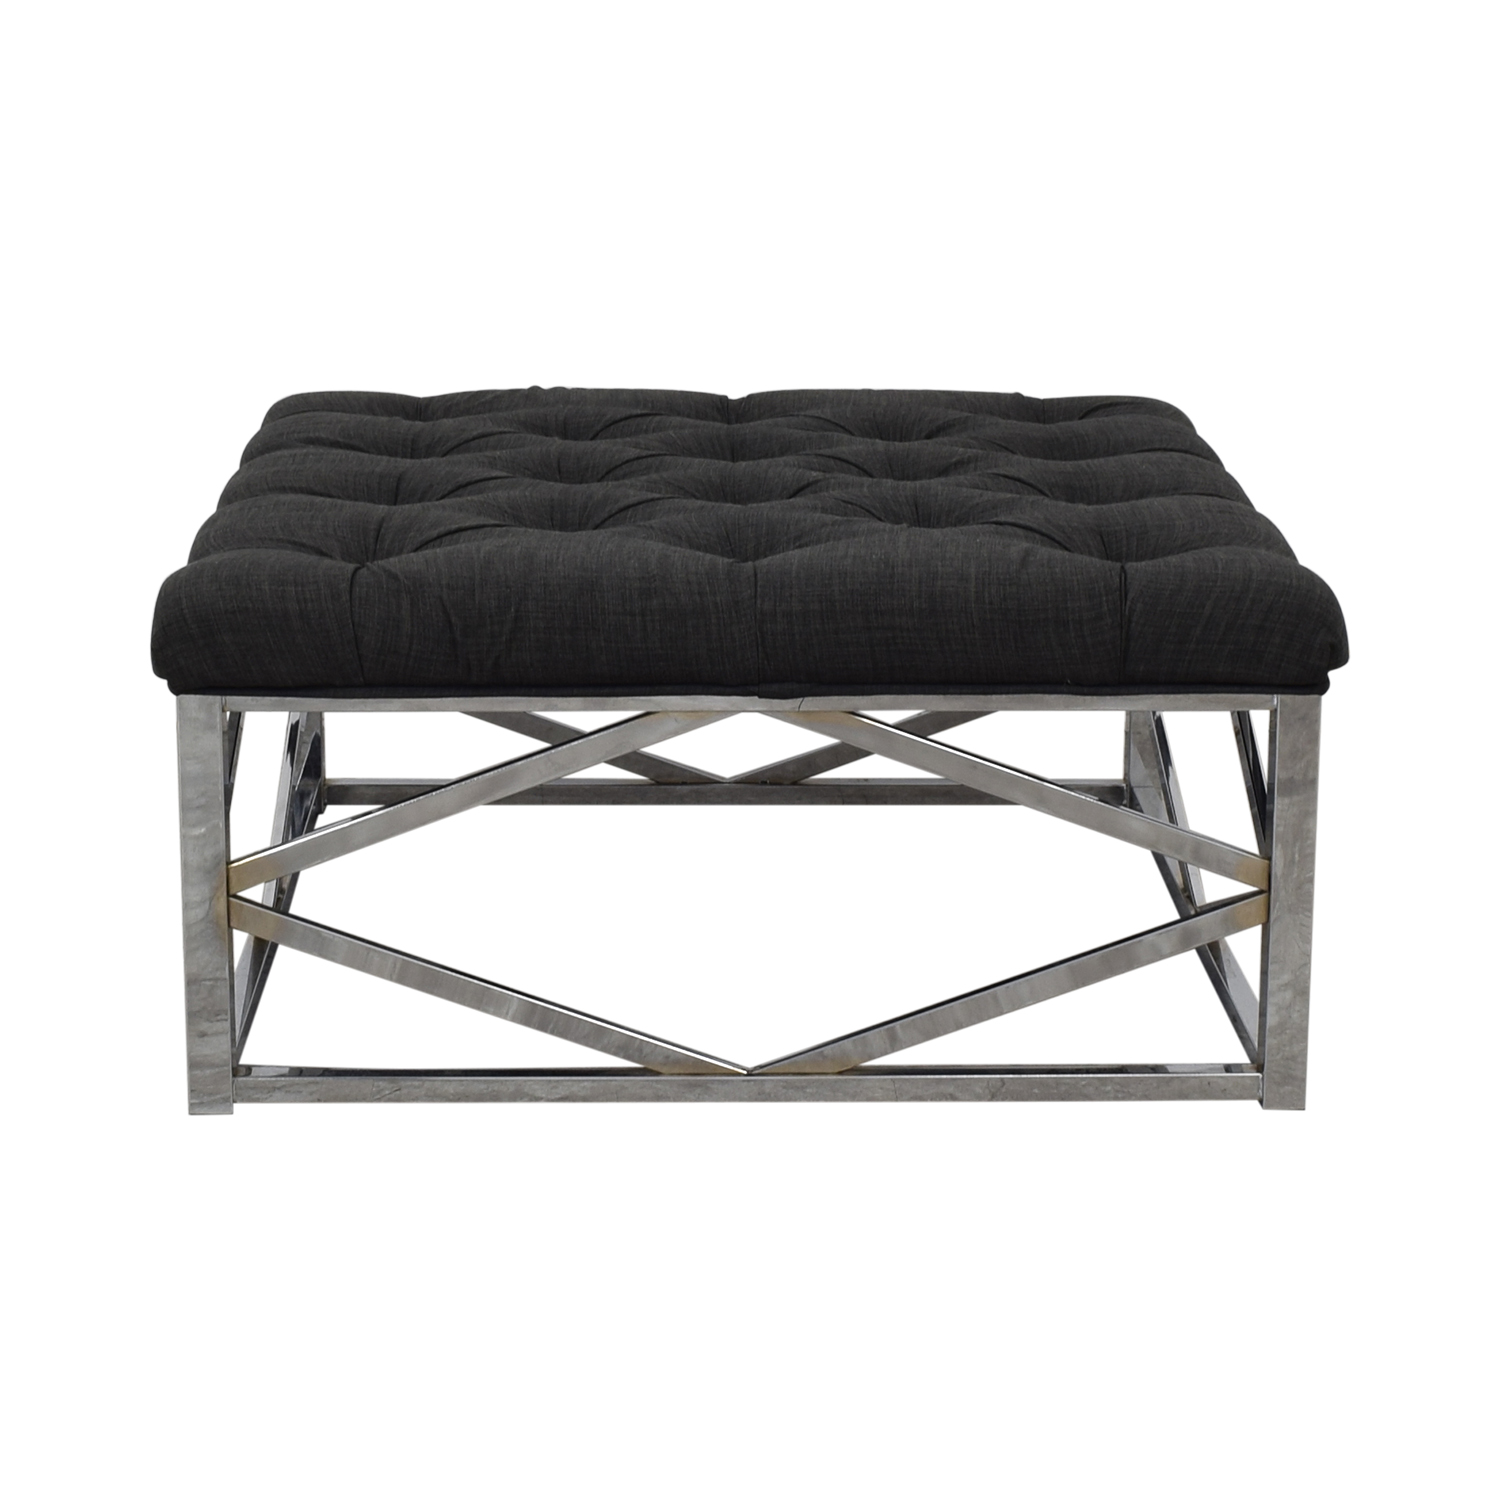 shop Inspire Q Inspire Q Bold Solene Grey Tufted Square Ottoman Coffee Table online